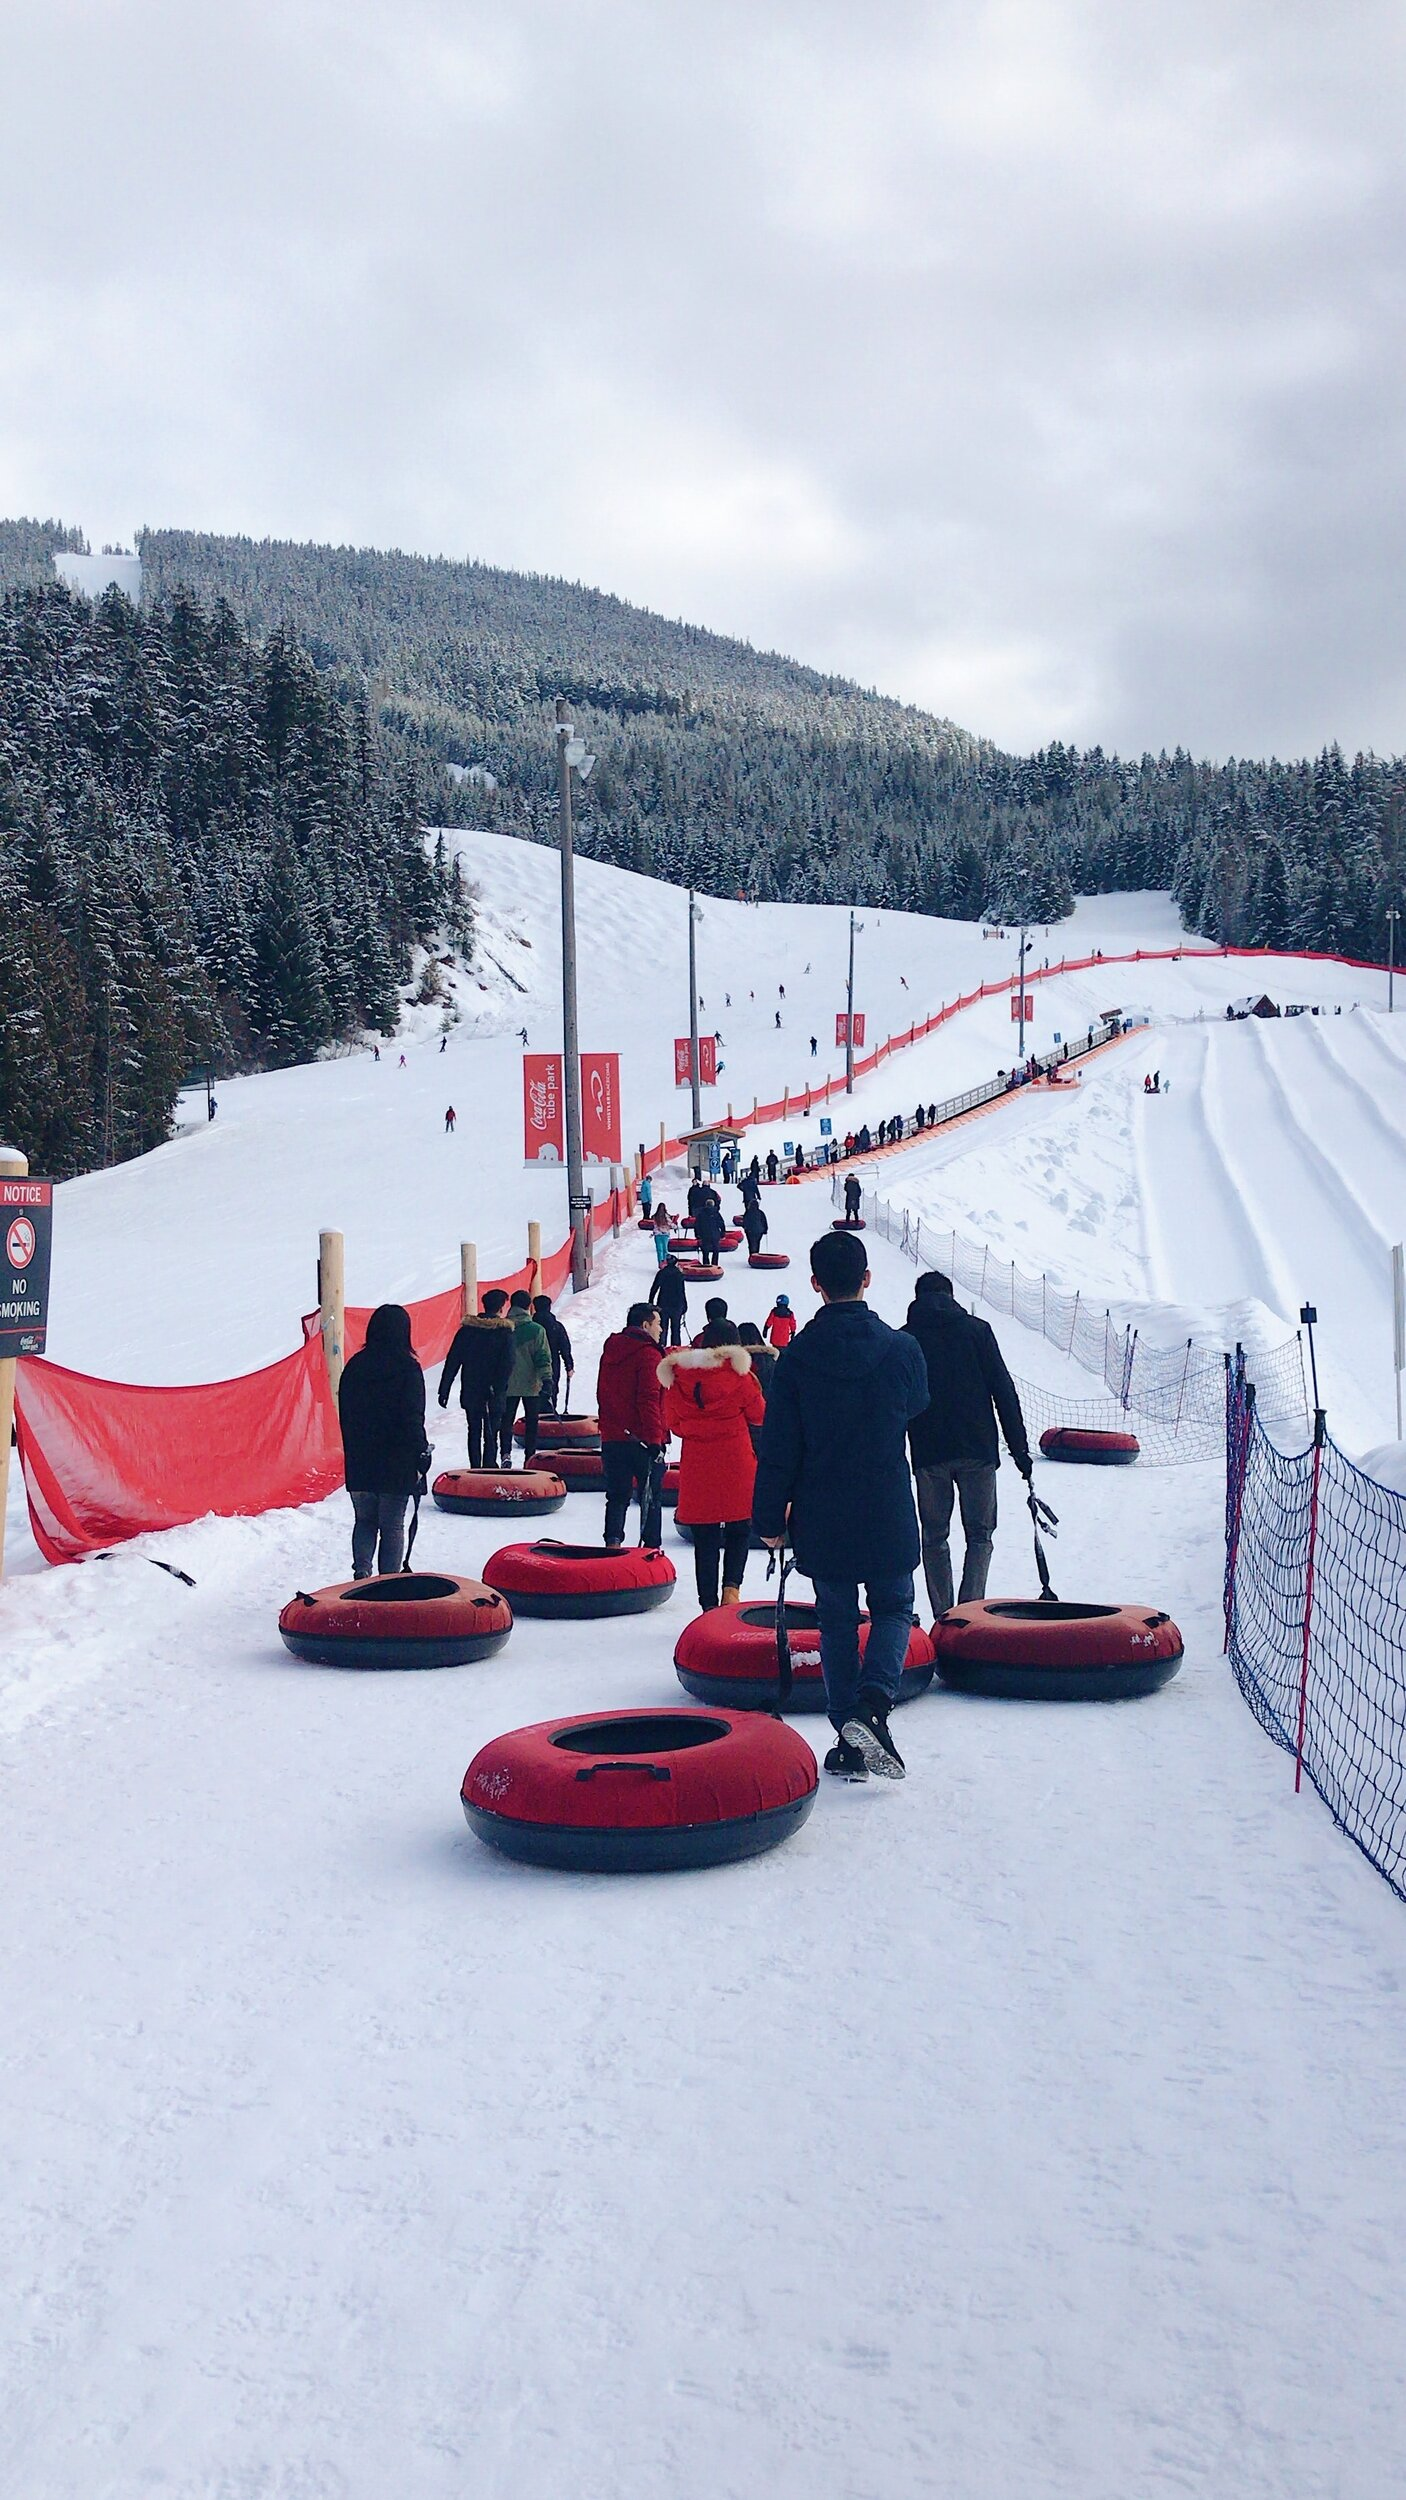 People tubing in the snow